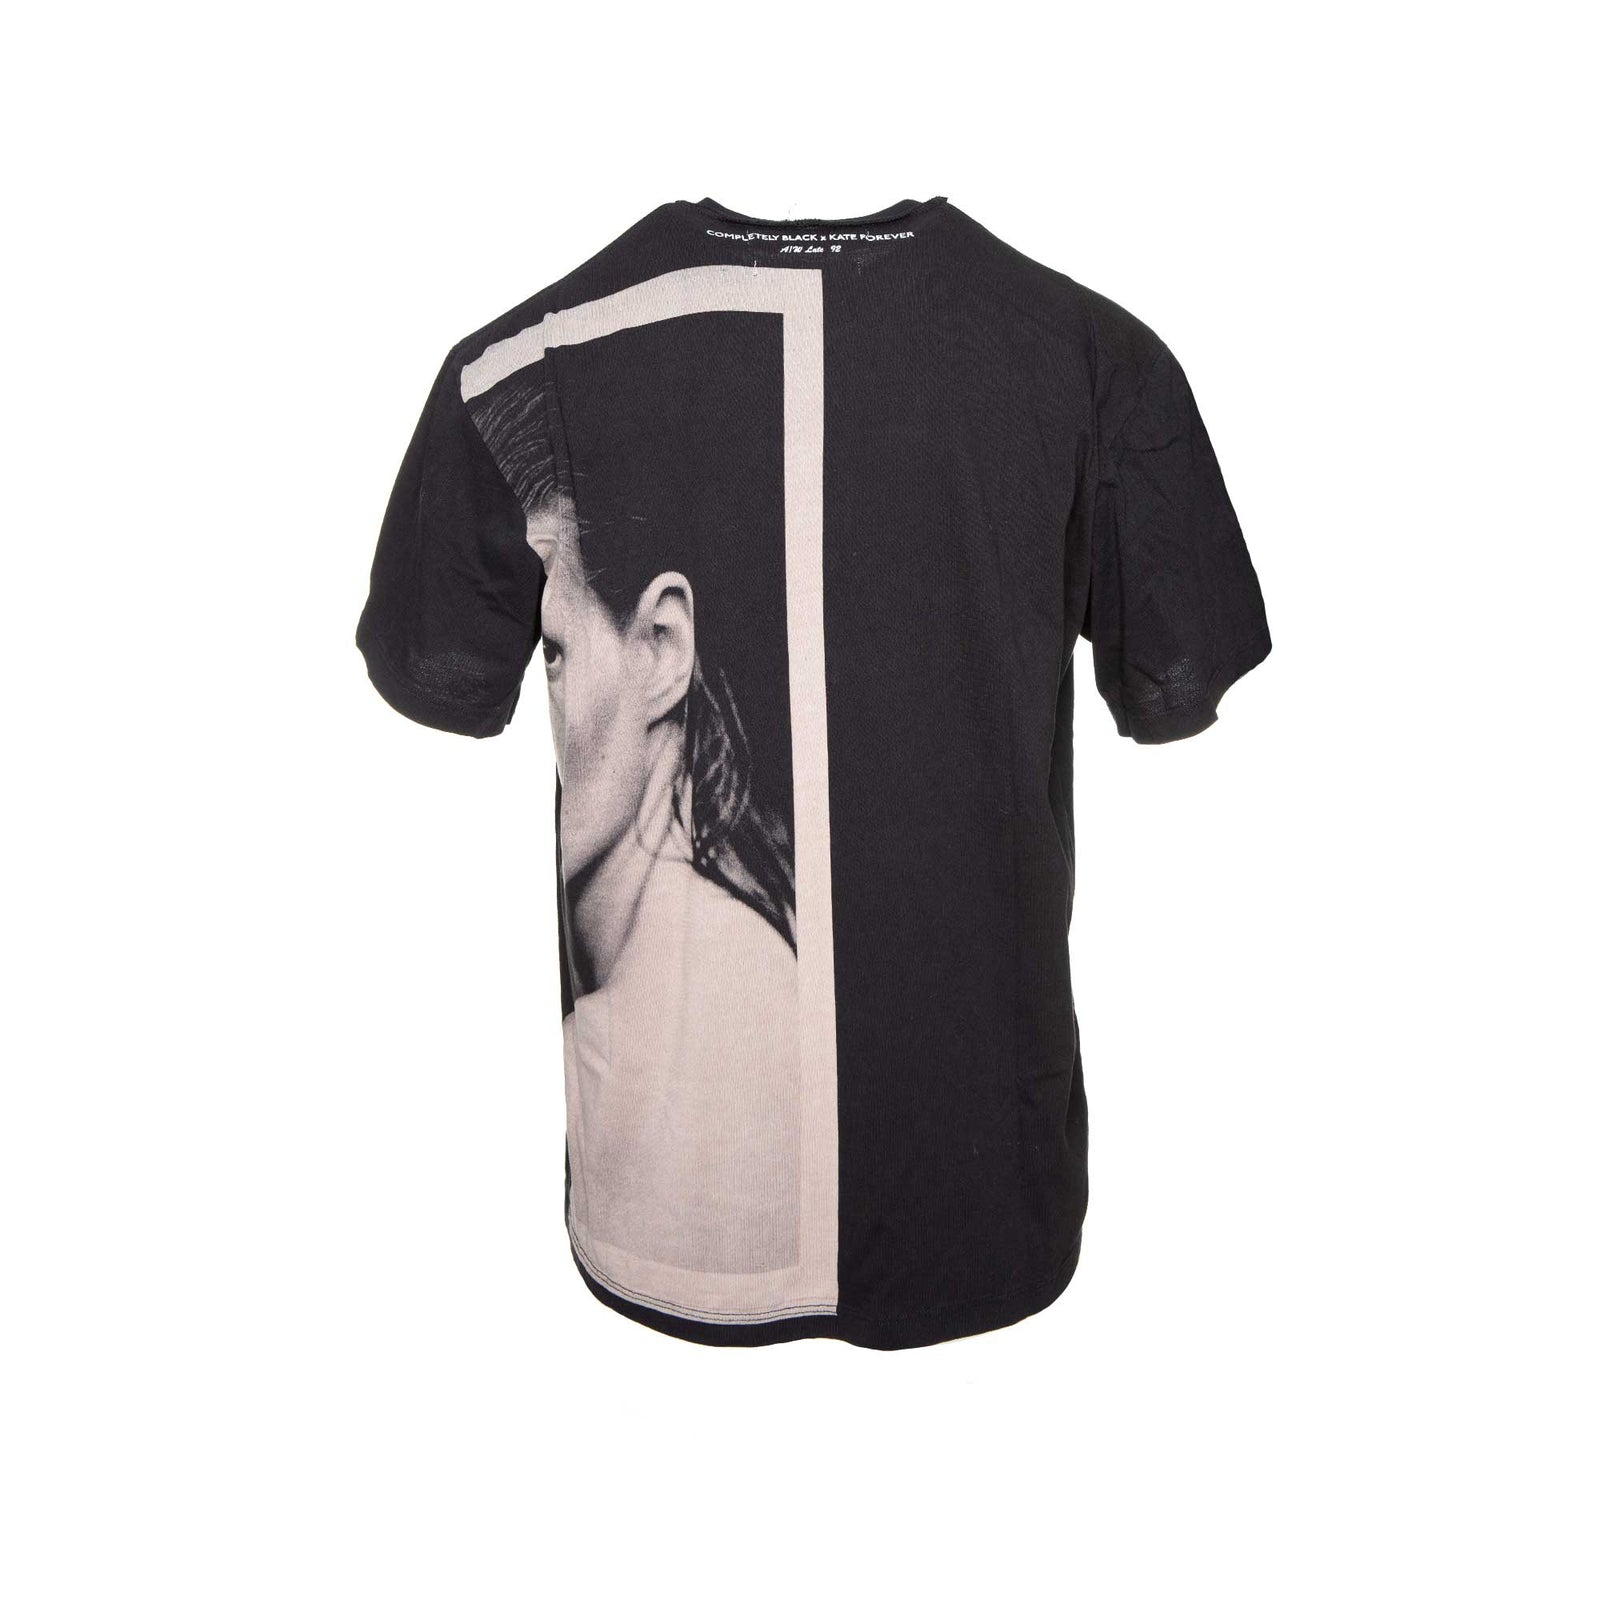 Mr. Completely Kate Forever Tee- Left Face